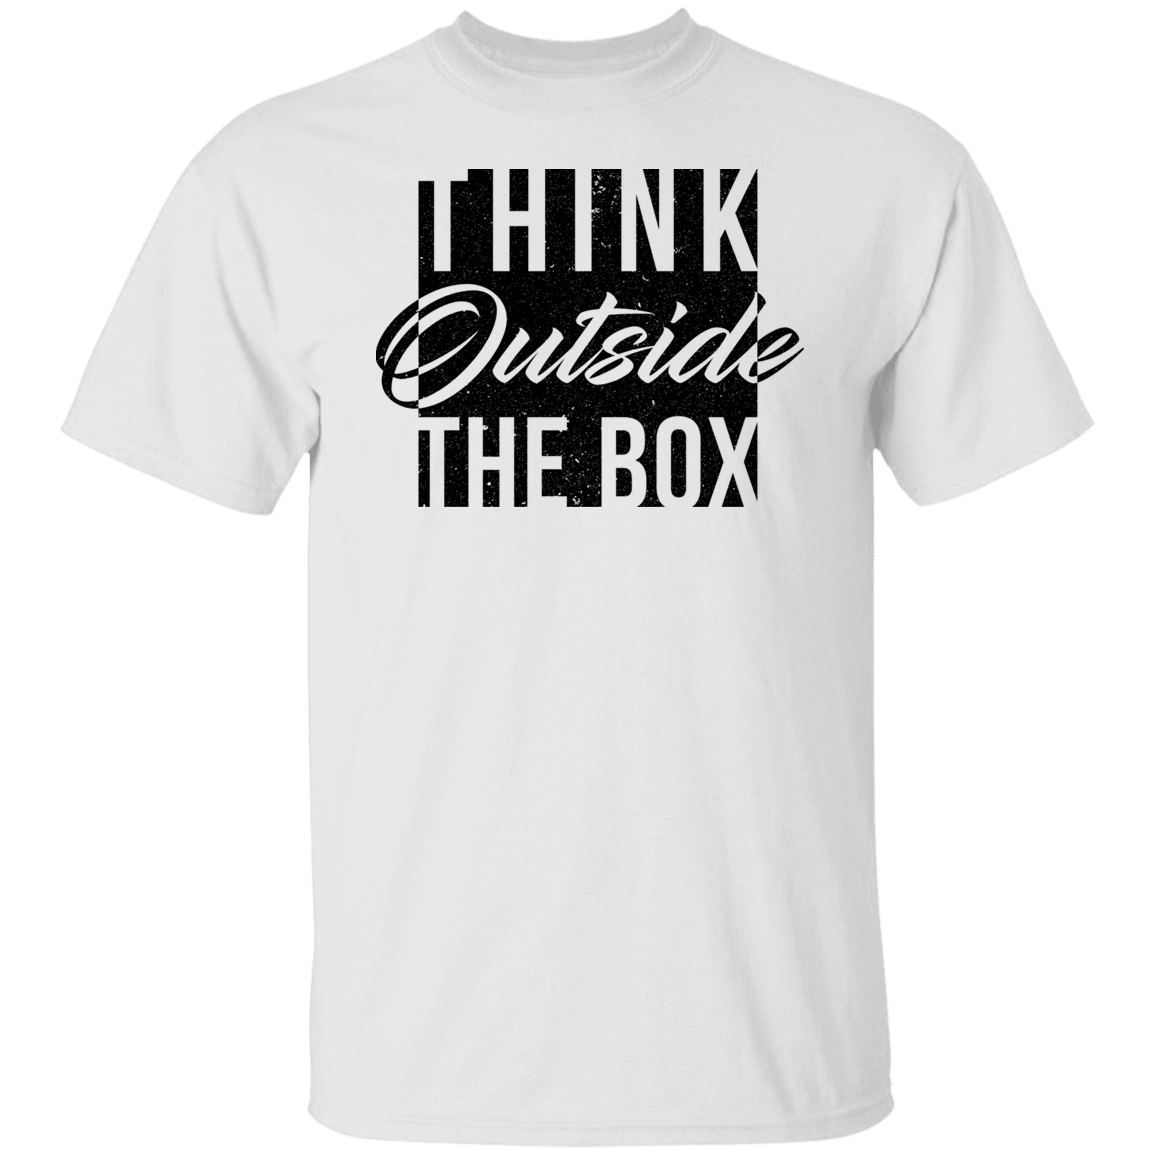 Think Outside The Box Shirt, Motivational T-Shirt, Minimalist, Gift for Women, TShirt for Women, Women's Tee, Cute Tee, Inspirational Tee